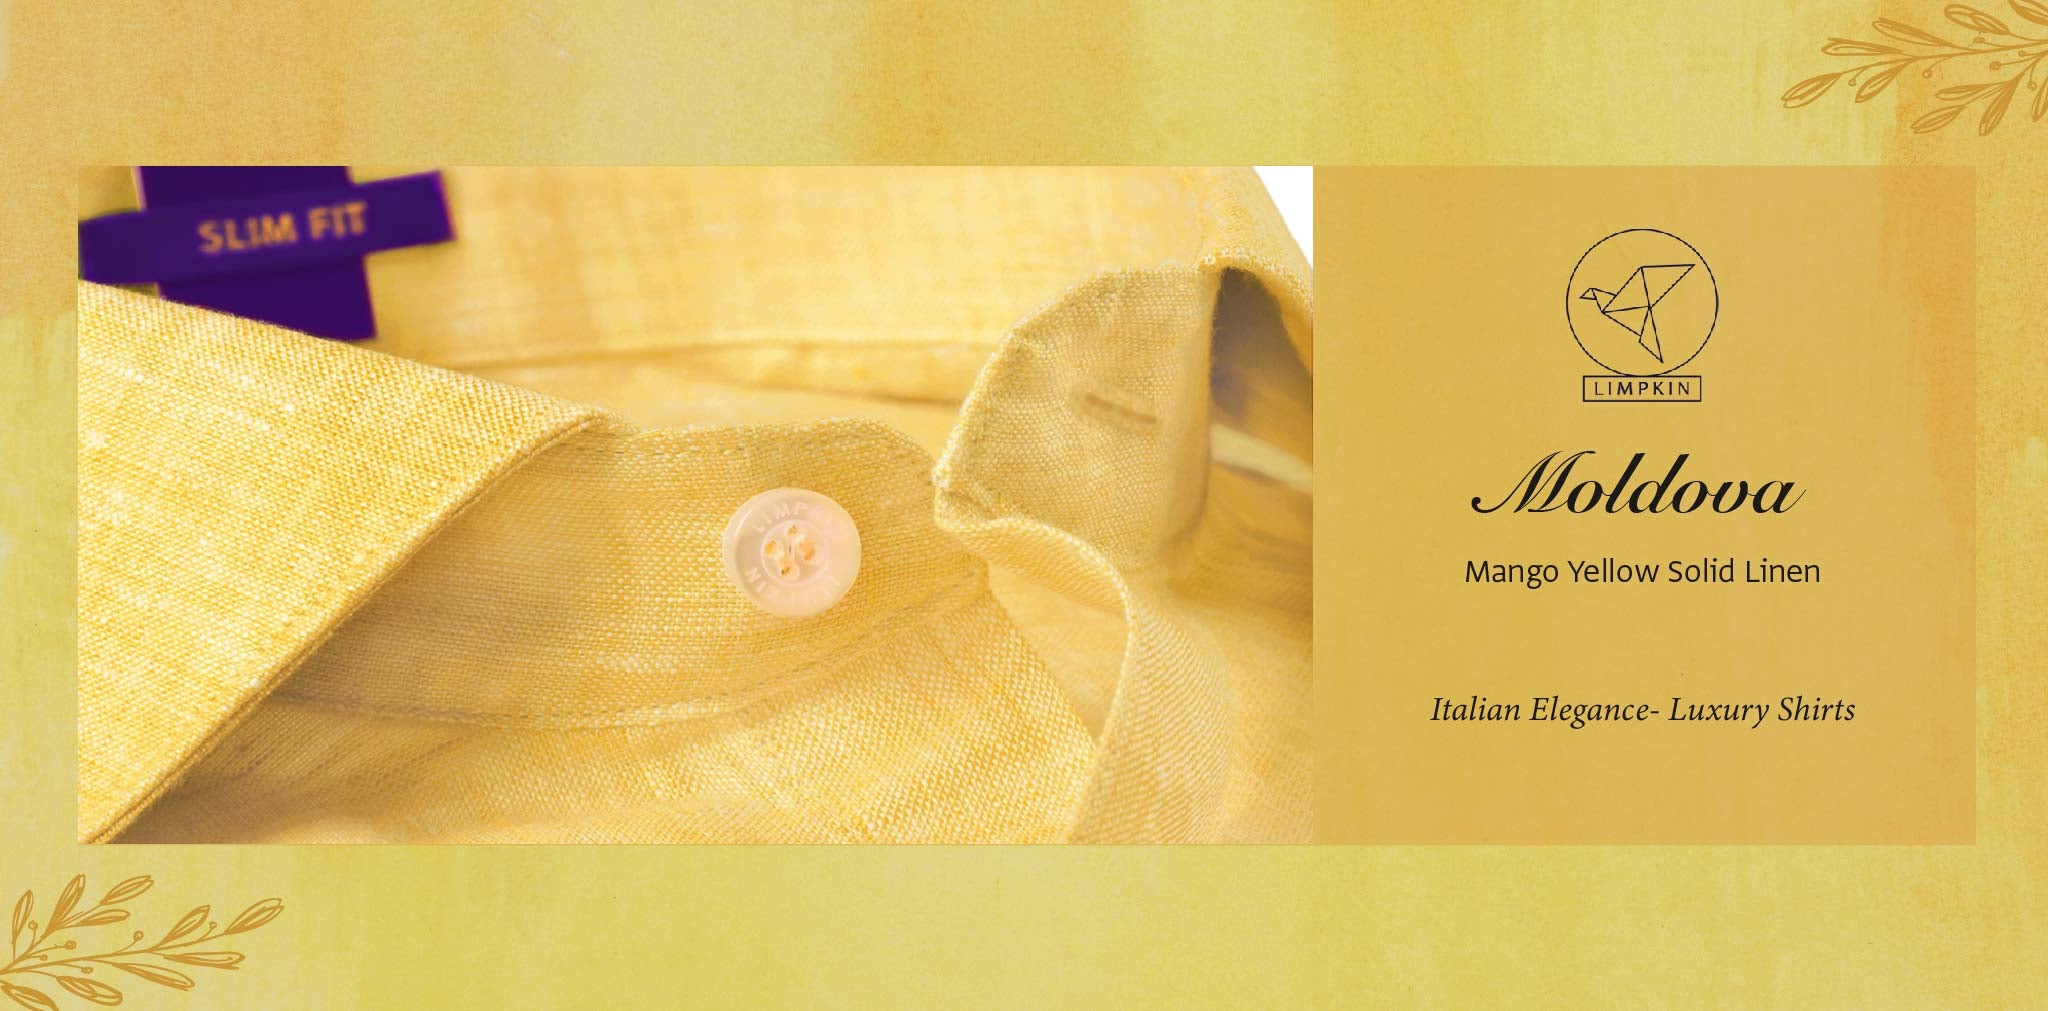 Moldova- Mango Yellow Solid Linen- 66's Lea Pure Luxury Linen- Delivery from 16th Jan - Banner